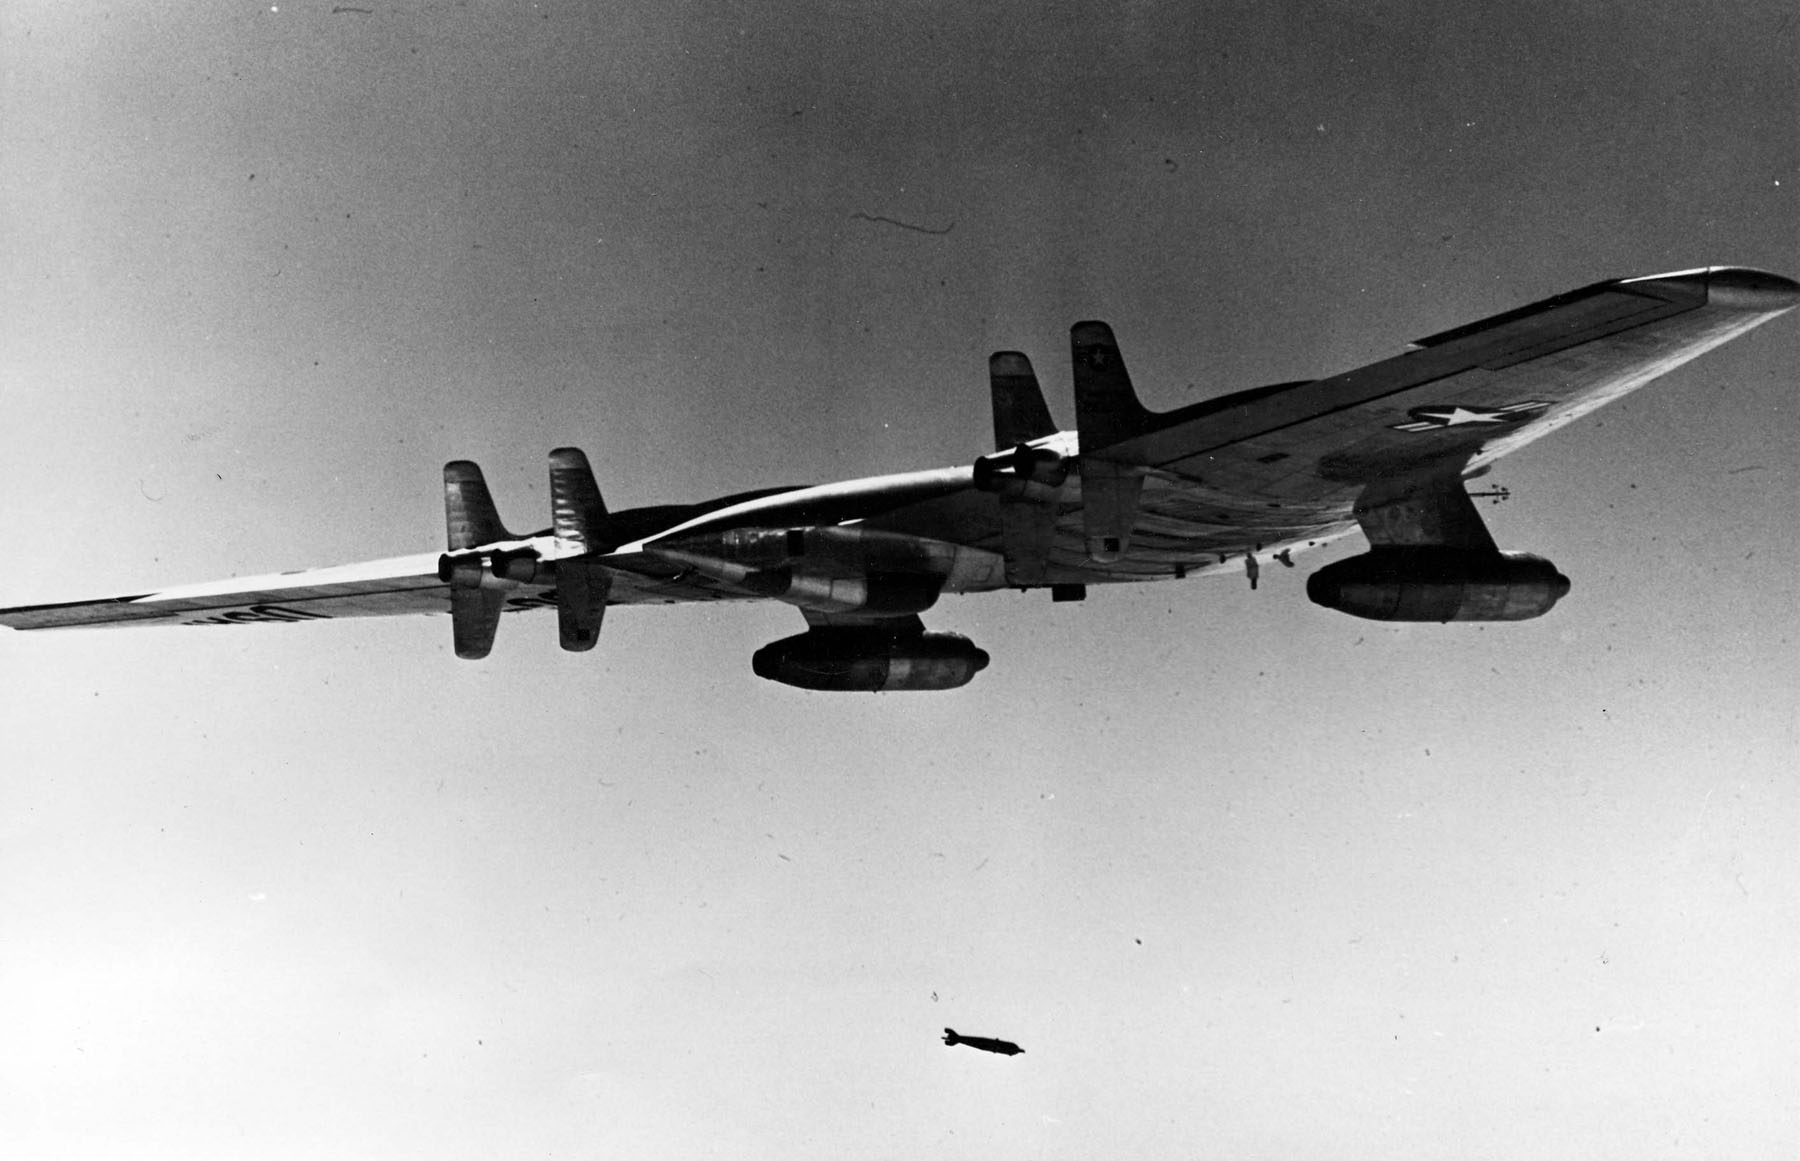 Northrop YRB 49A in flight dropping a photo flash bomb 061025 F 1234S 029 image